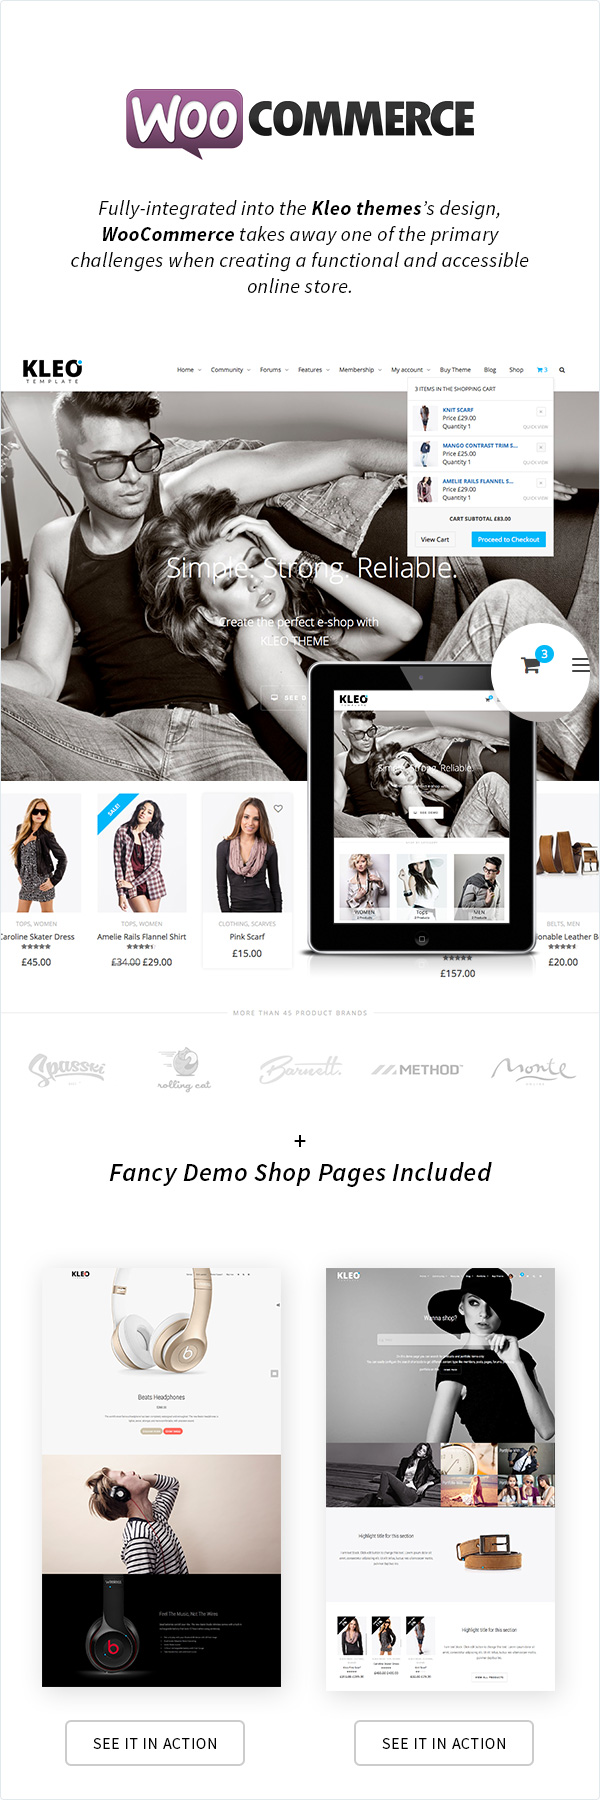 KLEO - Pro Community Focused, Multi-Purpose BuddyPress Theme - 22